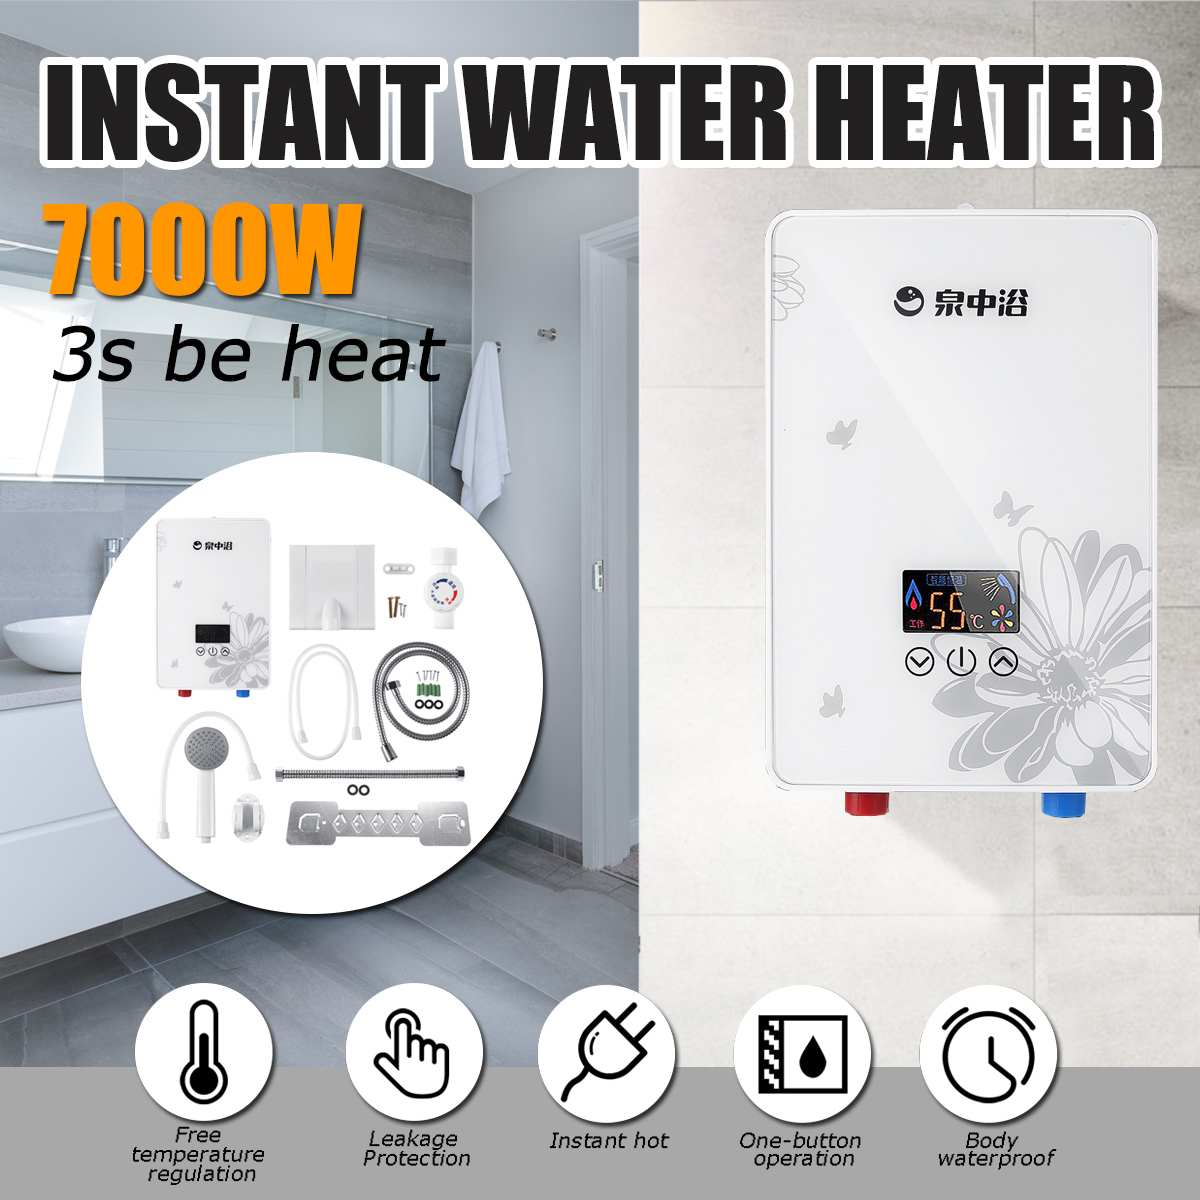 3s Instant Hot 7000W 220V Electric Hot Water Heater Tankless Instant Boiler Bathroom Shower Set Thermostat Safe Intelligent Auto